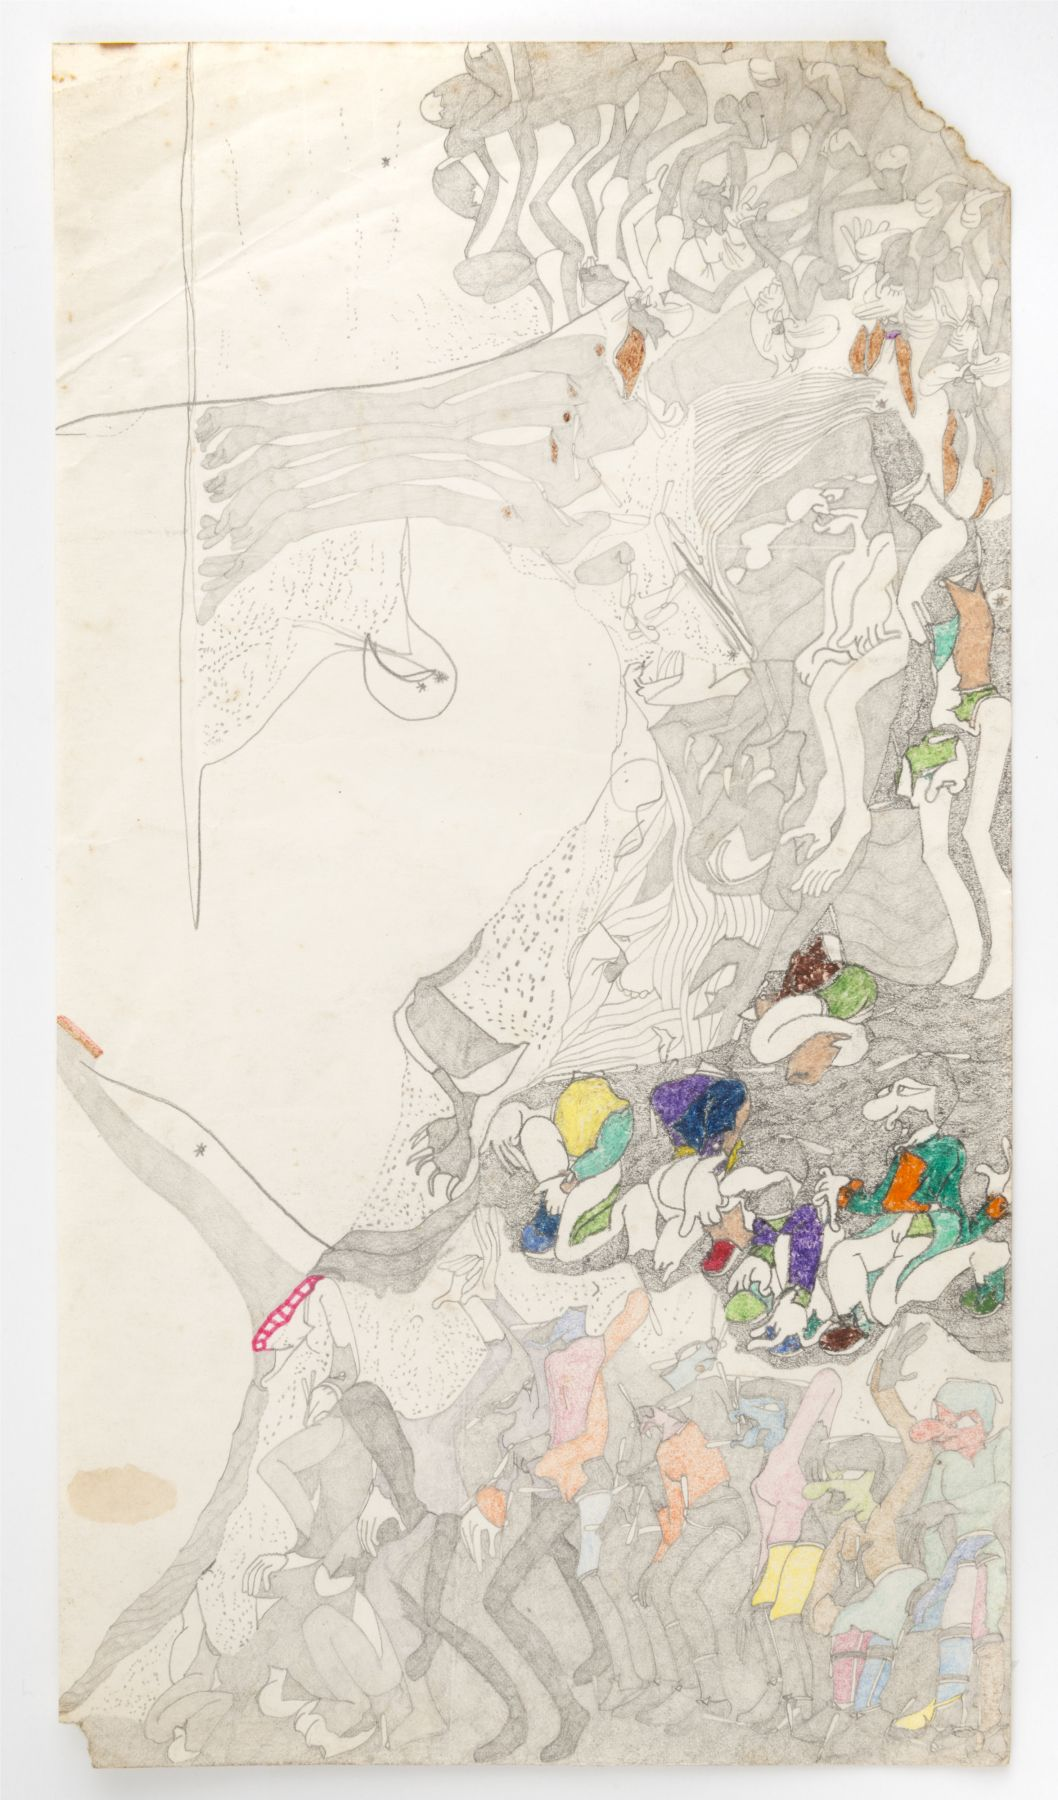 Susan Te Kahurangi King(1951) New Zealand, Untitled, c. 1975-1980, Graphite, colored pencil and crayon on paper, 16.5 x 9 in